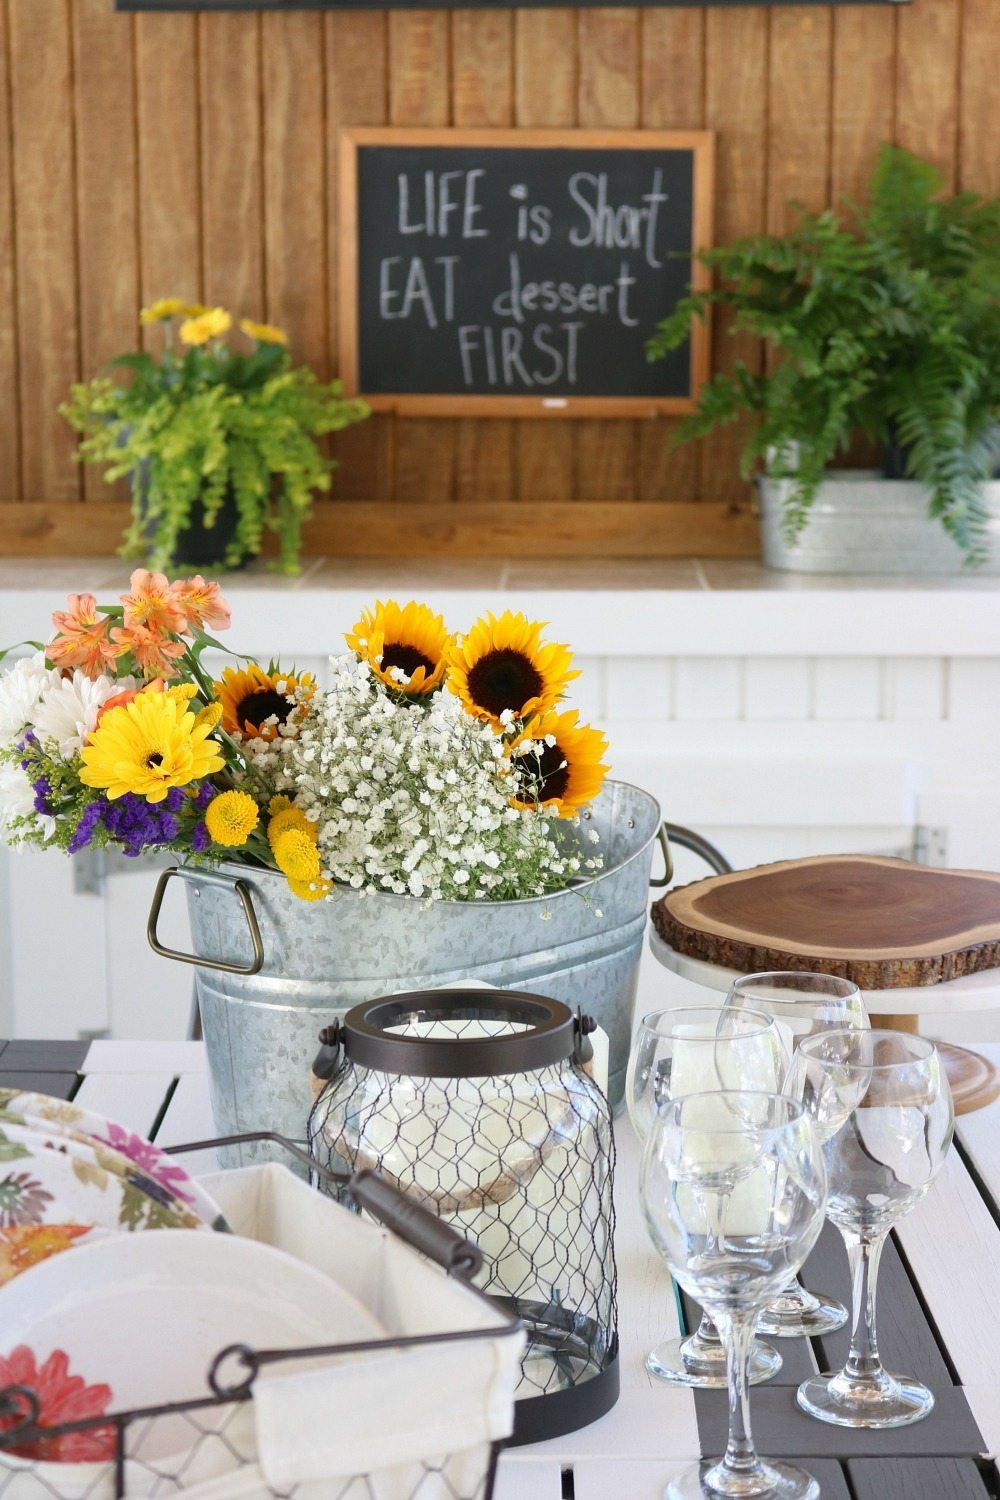 Entertaining outside with melamine and fresh flowers